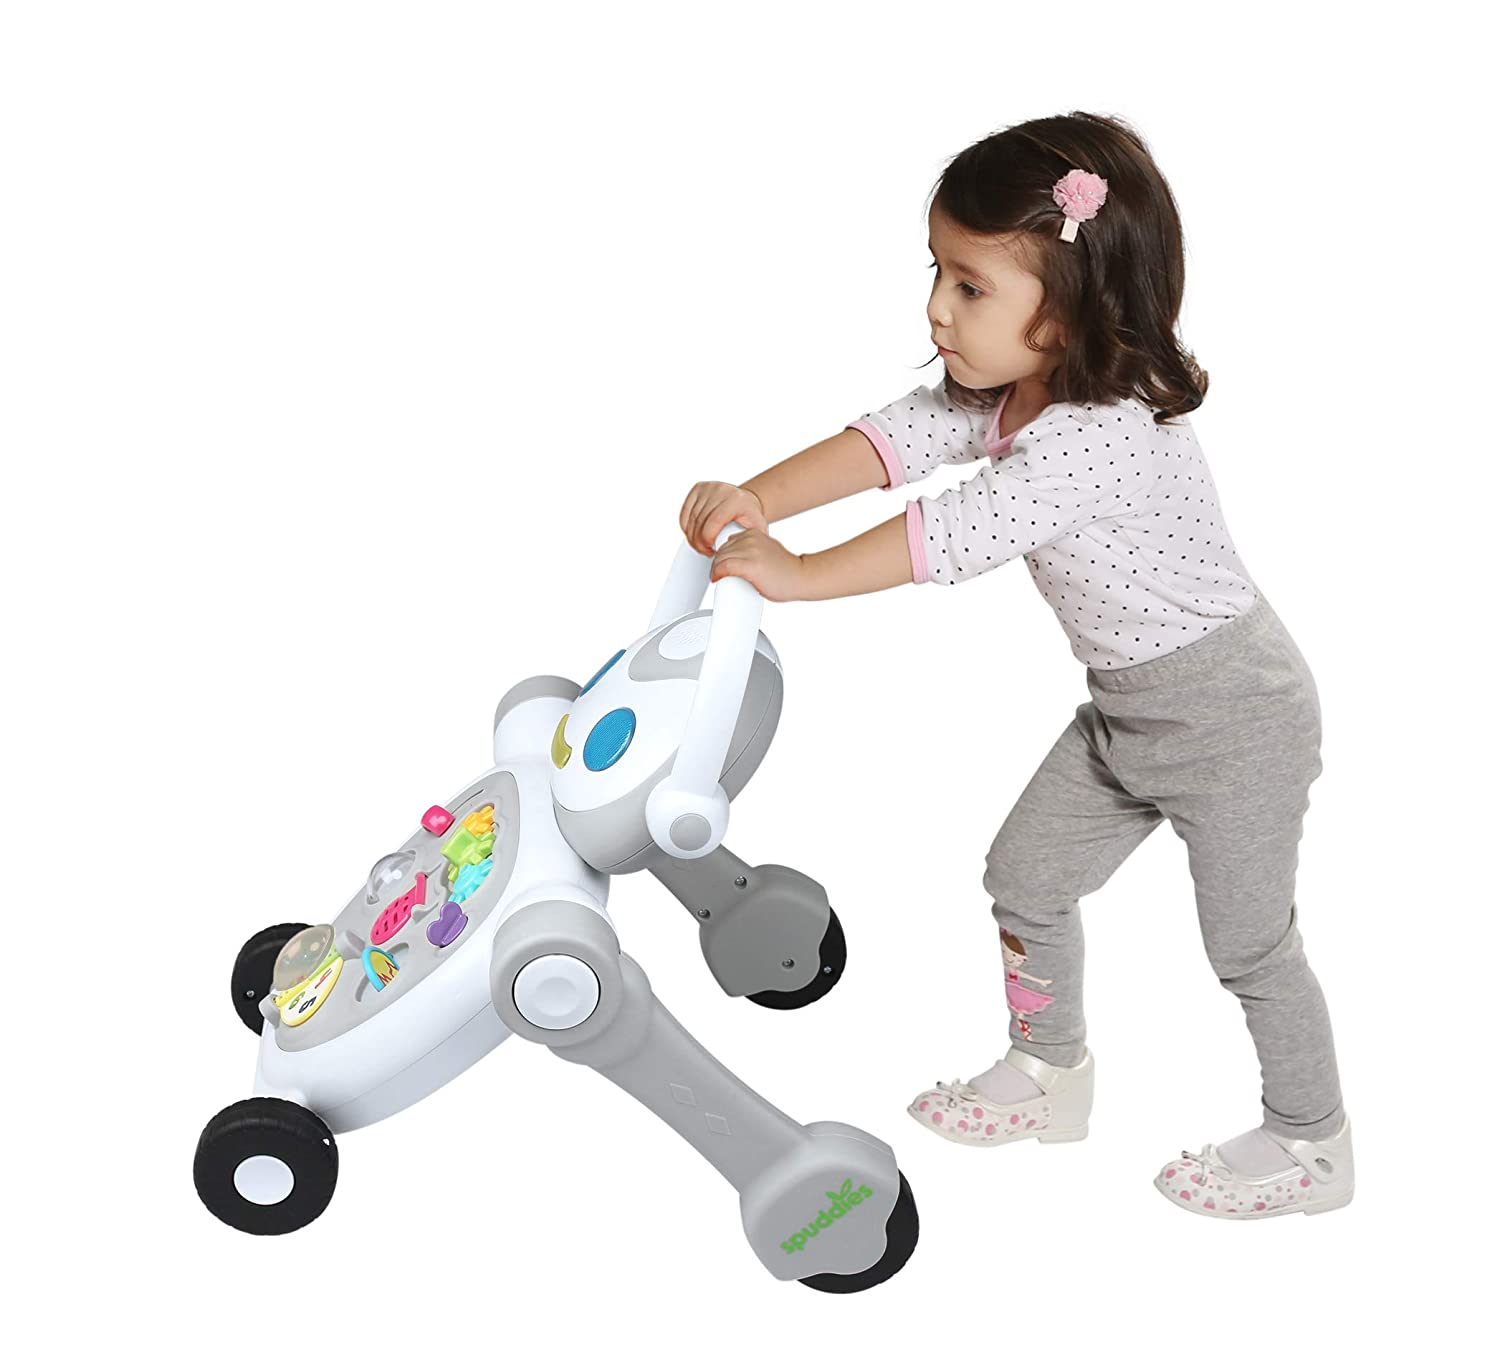 Amazon.com: Spuddies Robot - Paseador portátil, color gris: Baby